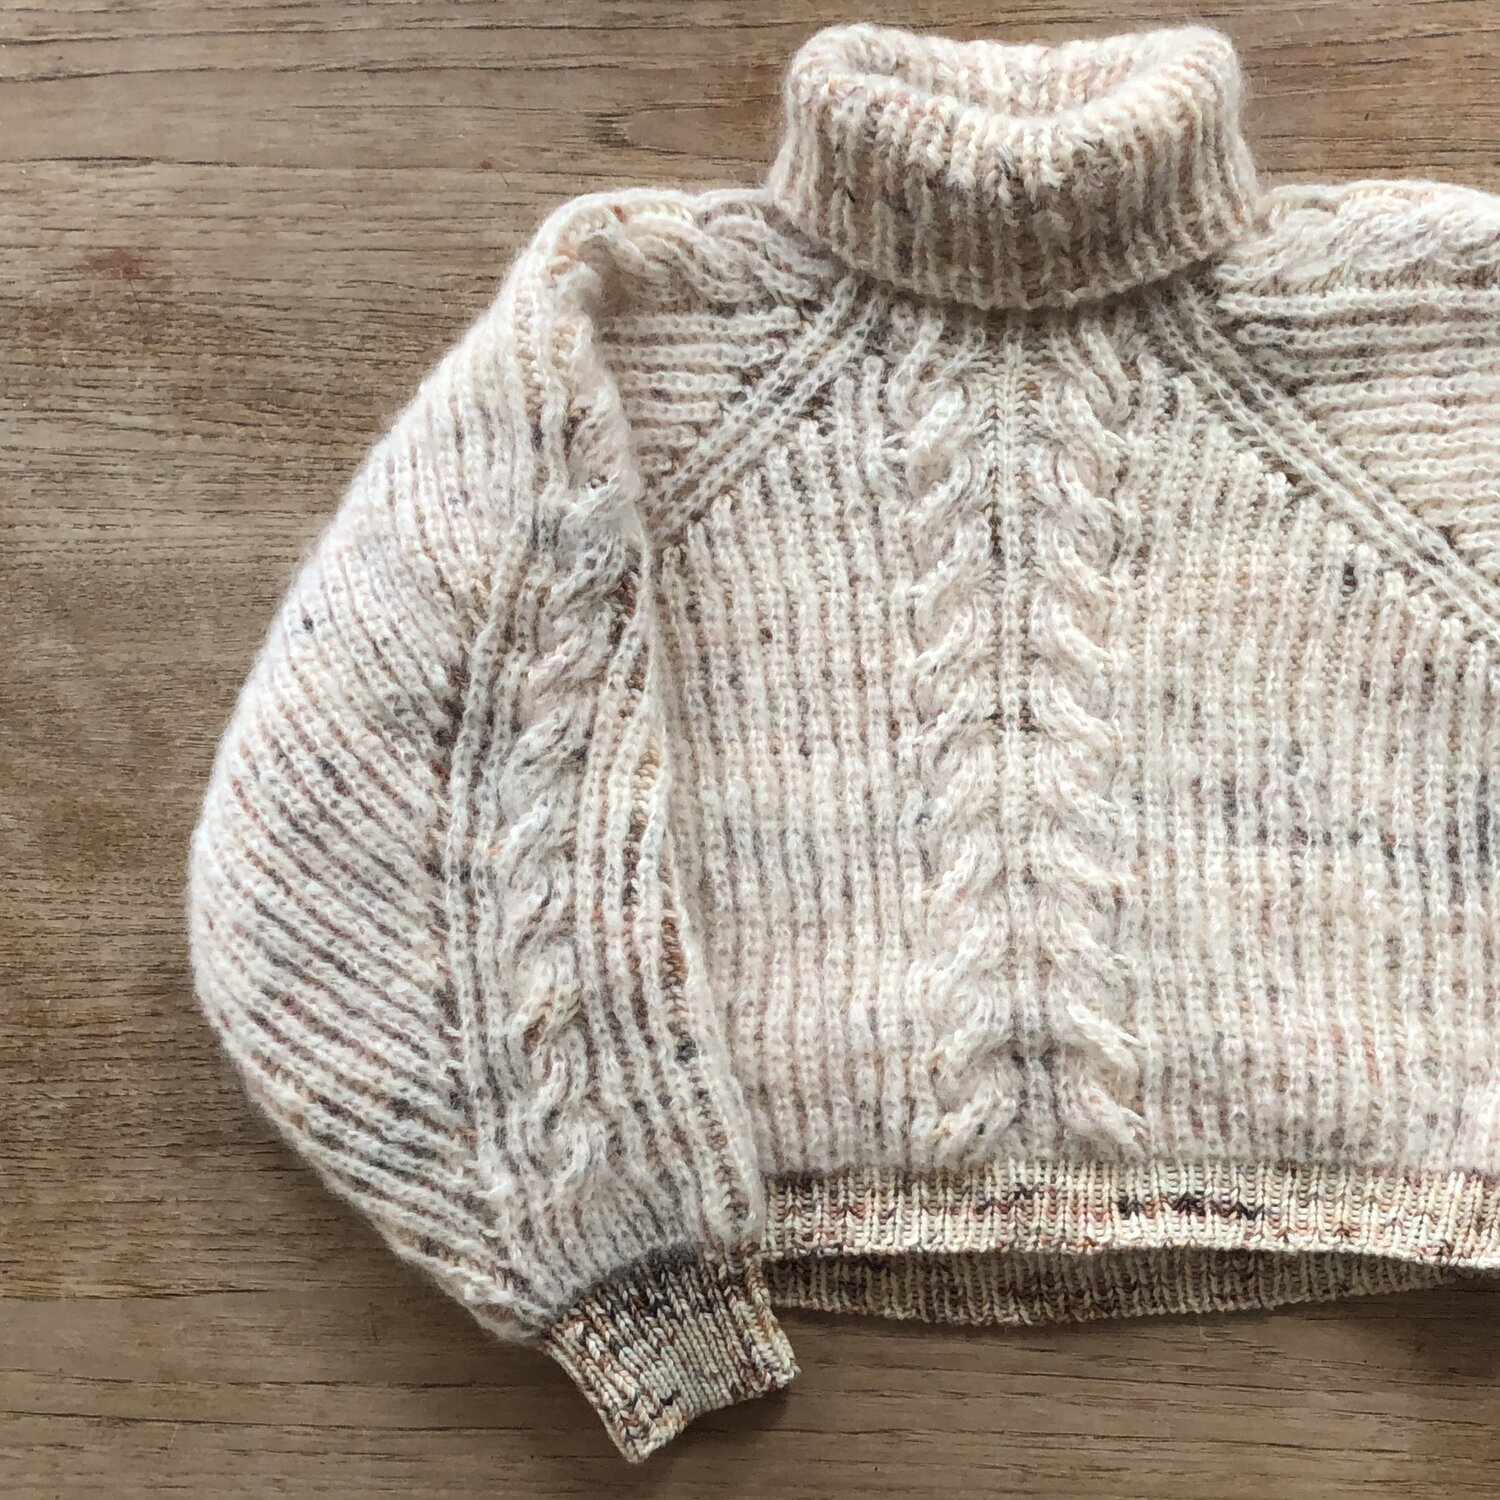 PopKnit One Way Or Another Sweater